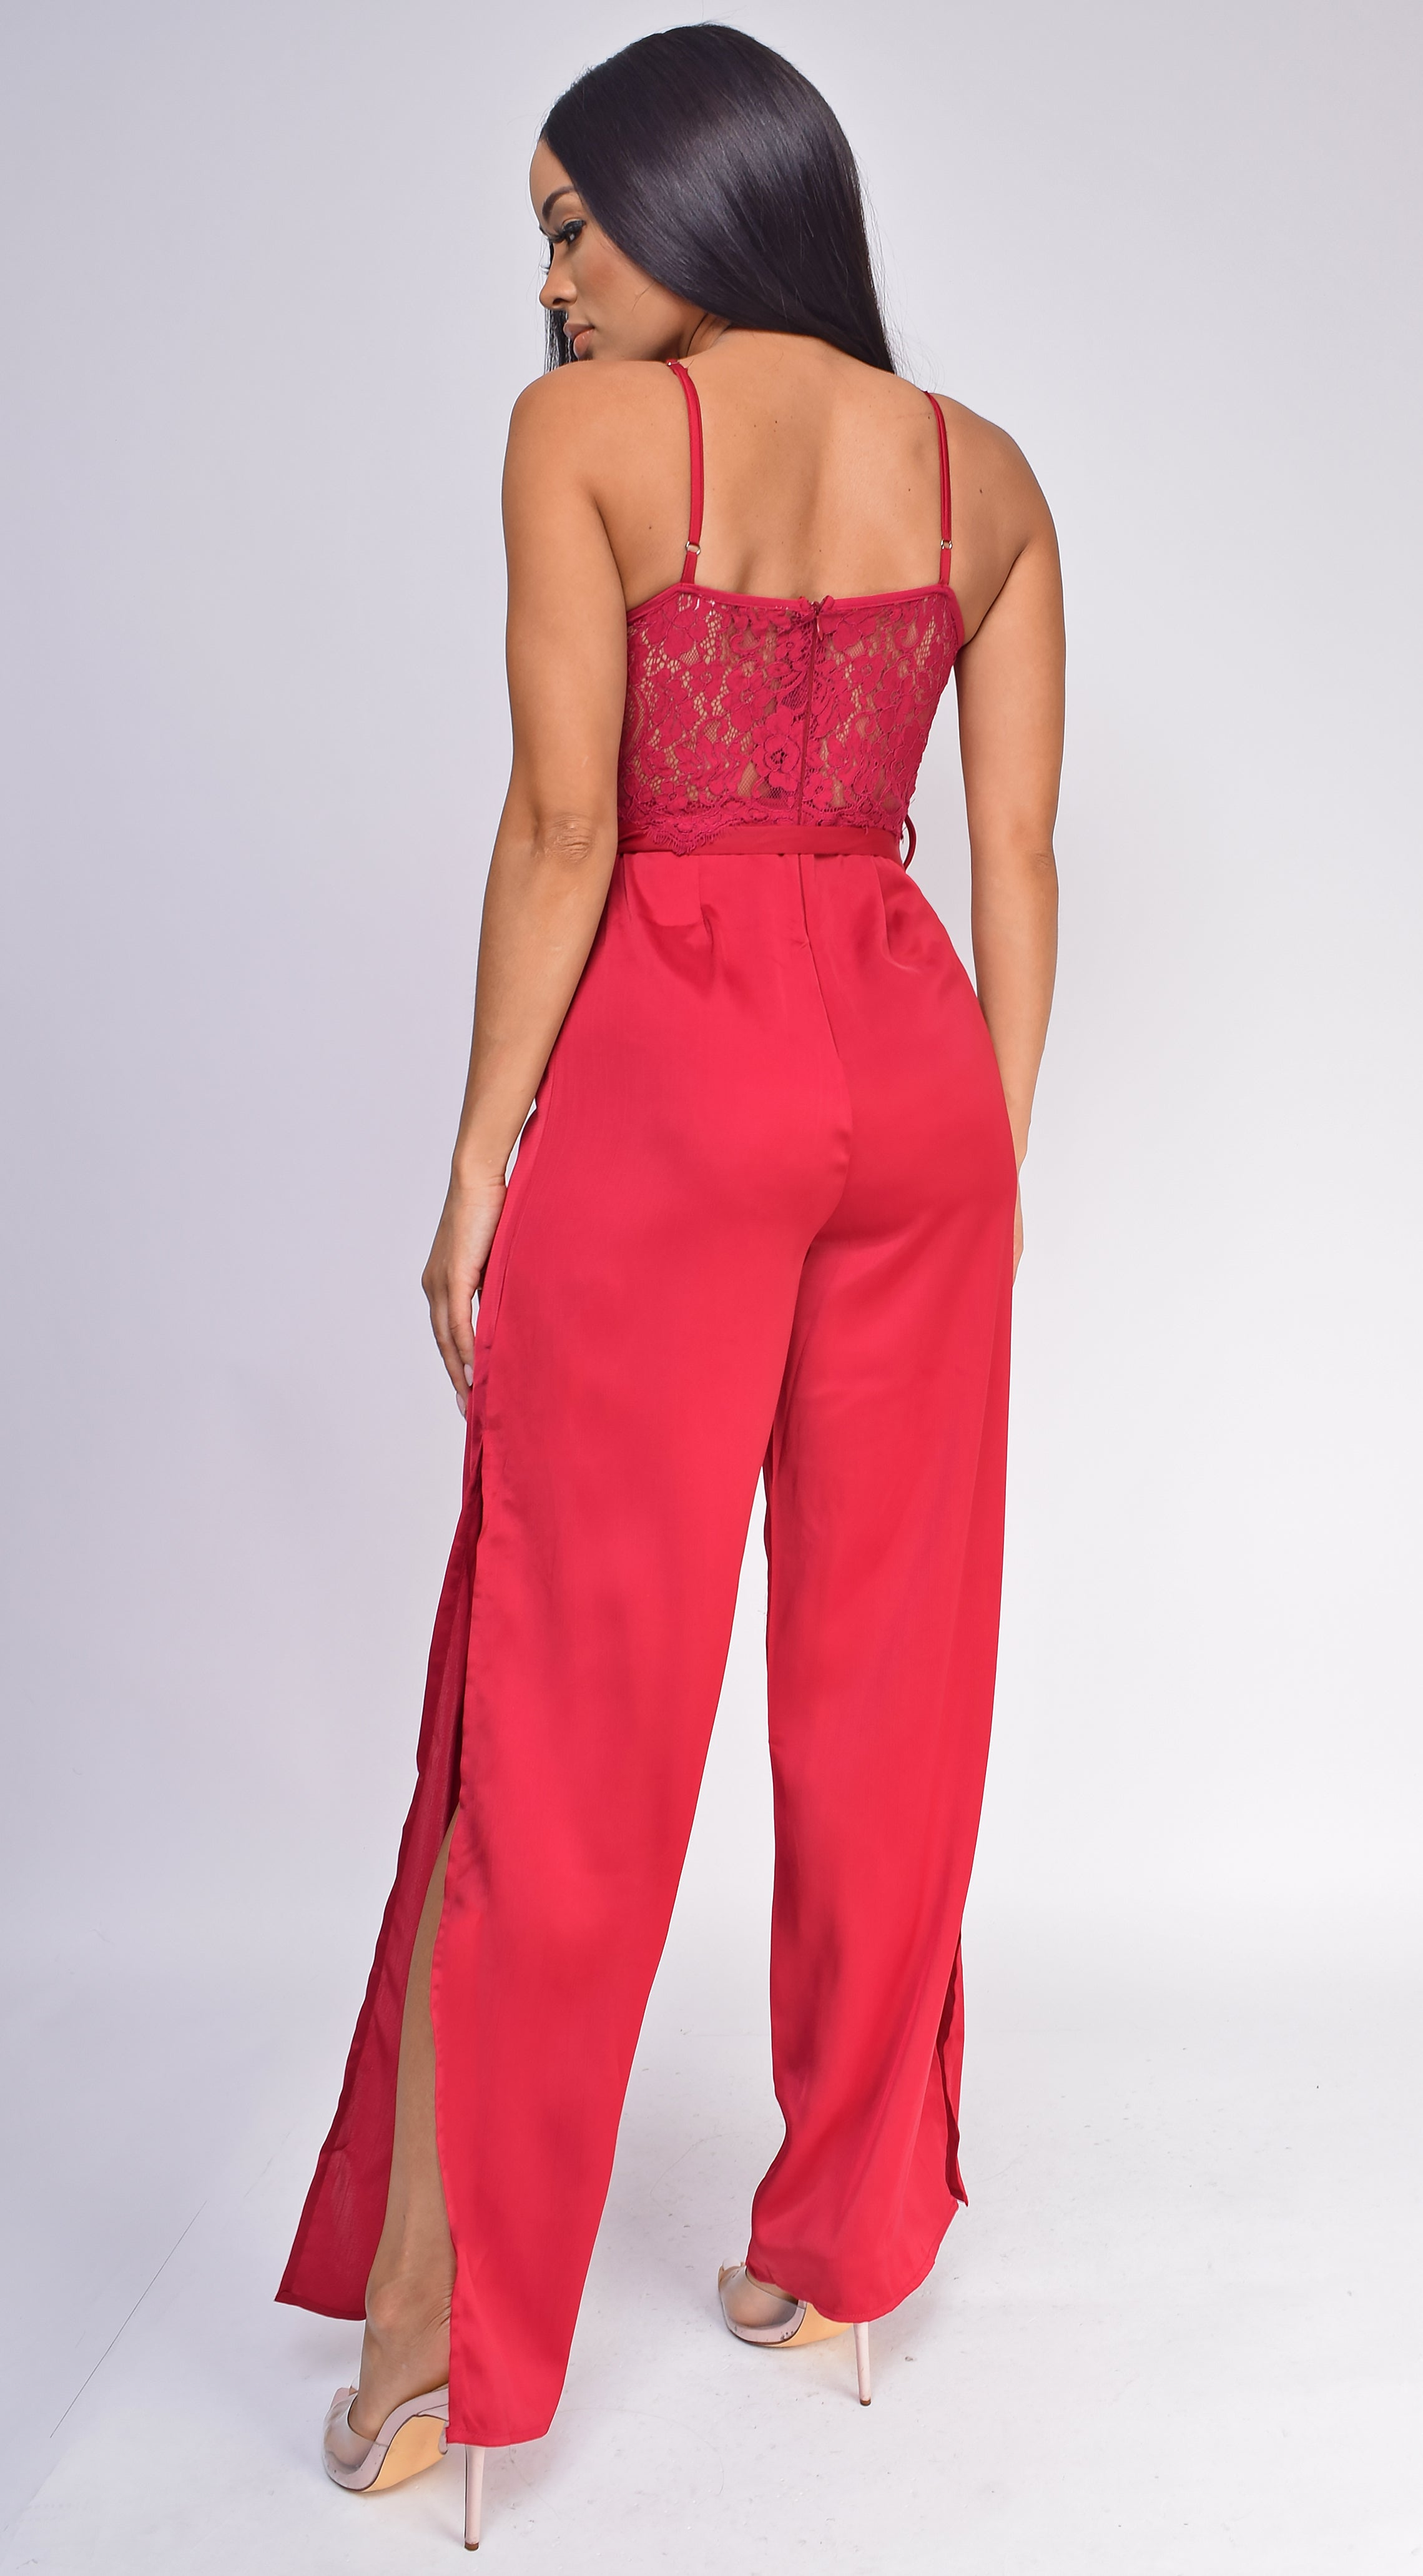 Raya Red Lace Top Satin Wide Leg Slit Jumpsuit